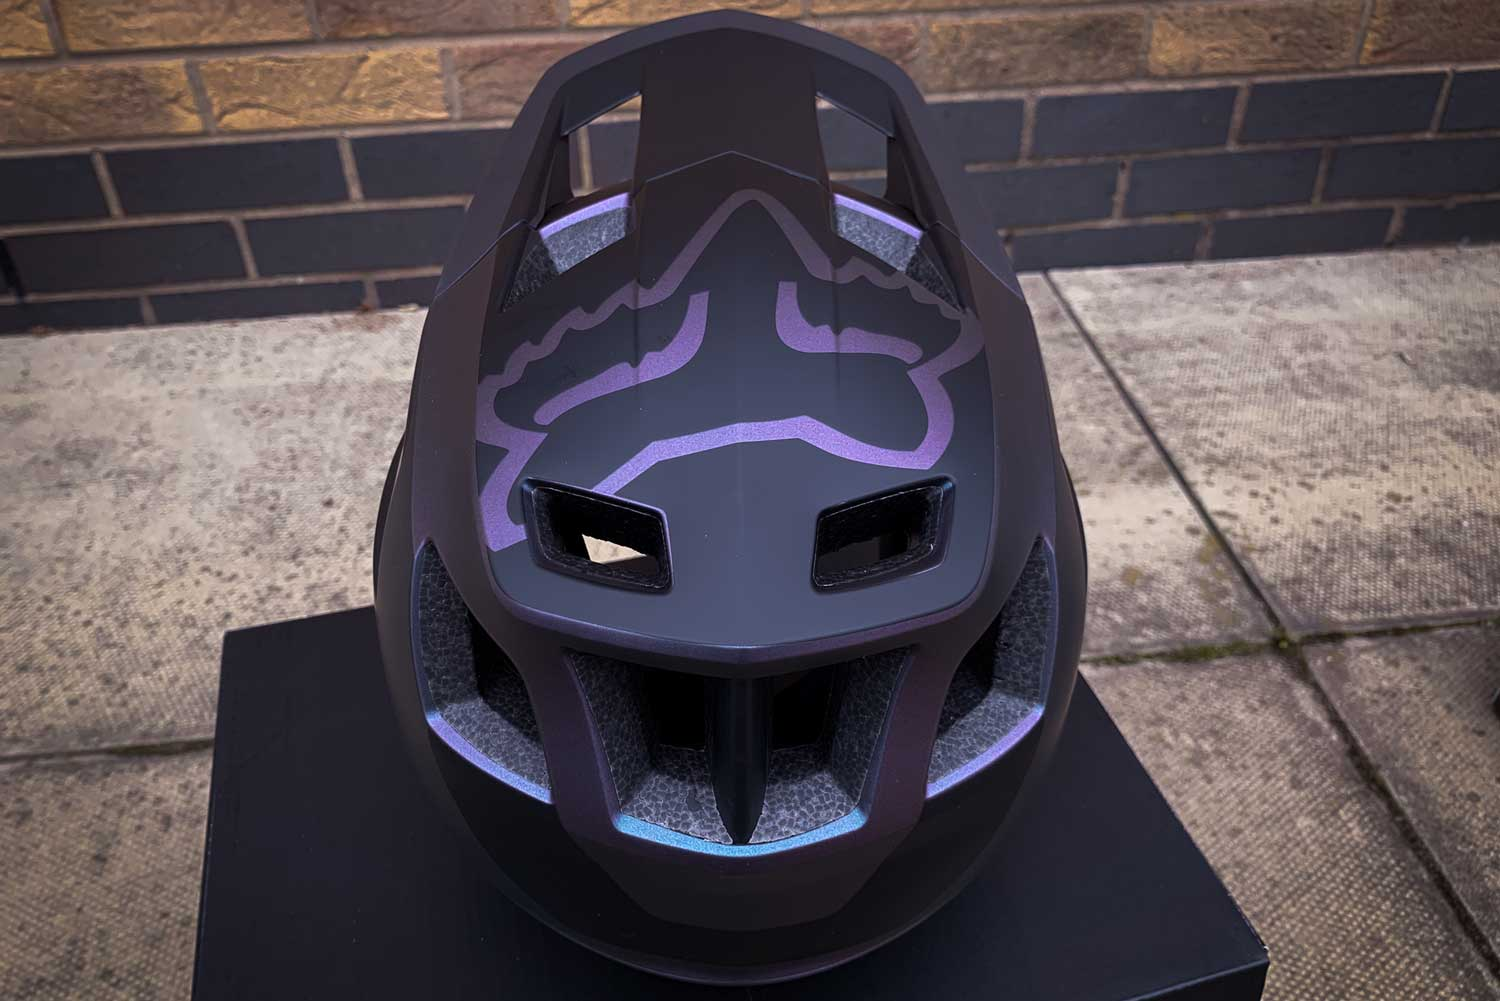 Fox Dropframe Helmet backview